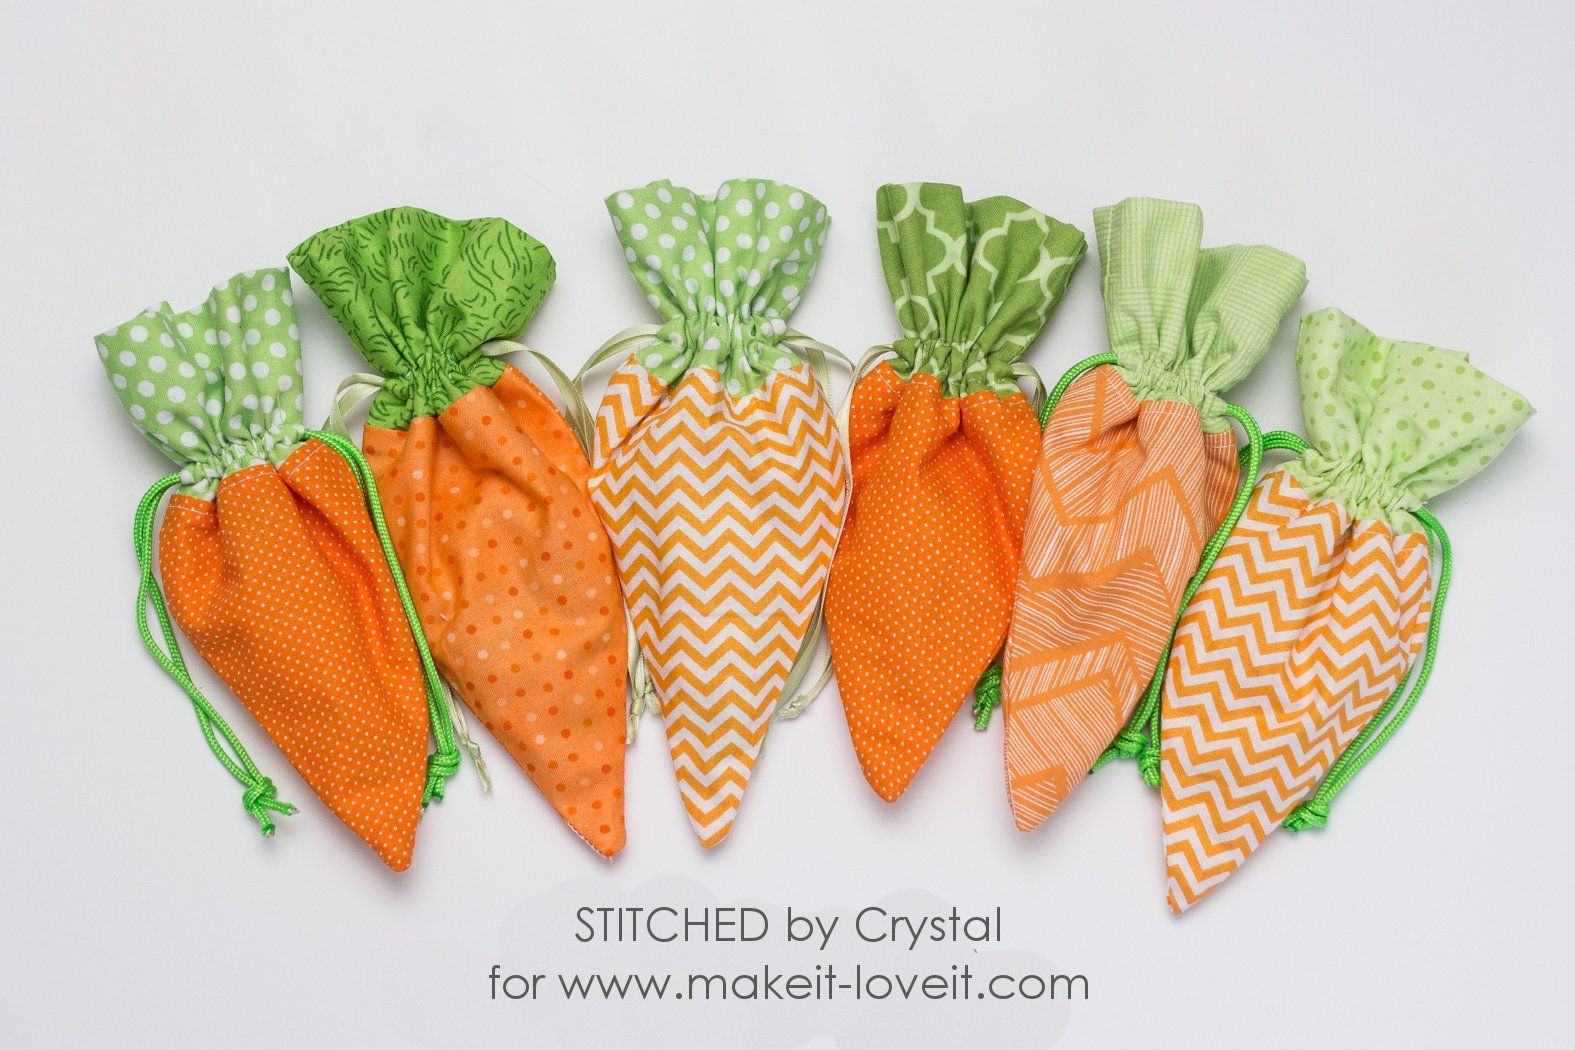 Sew a diy carrot treat bag for easter via makeit loveit 21 easter sewing projects to make the season festive negle Choice Image